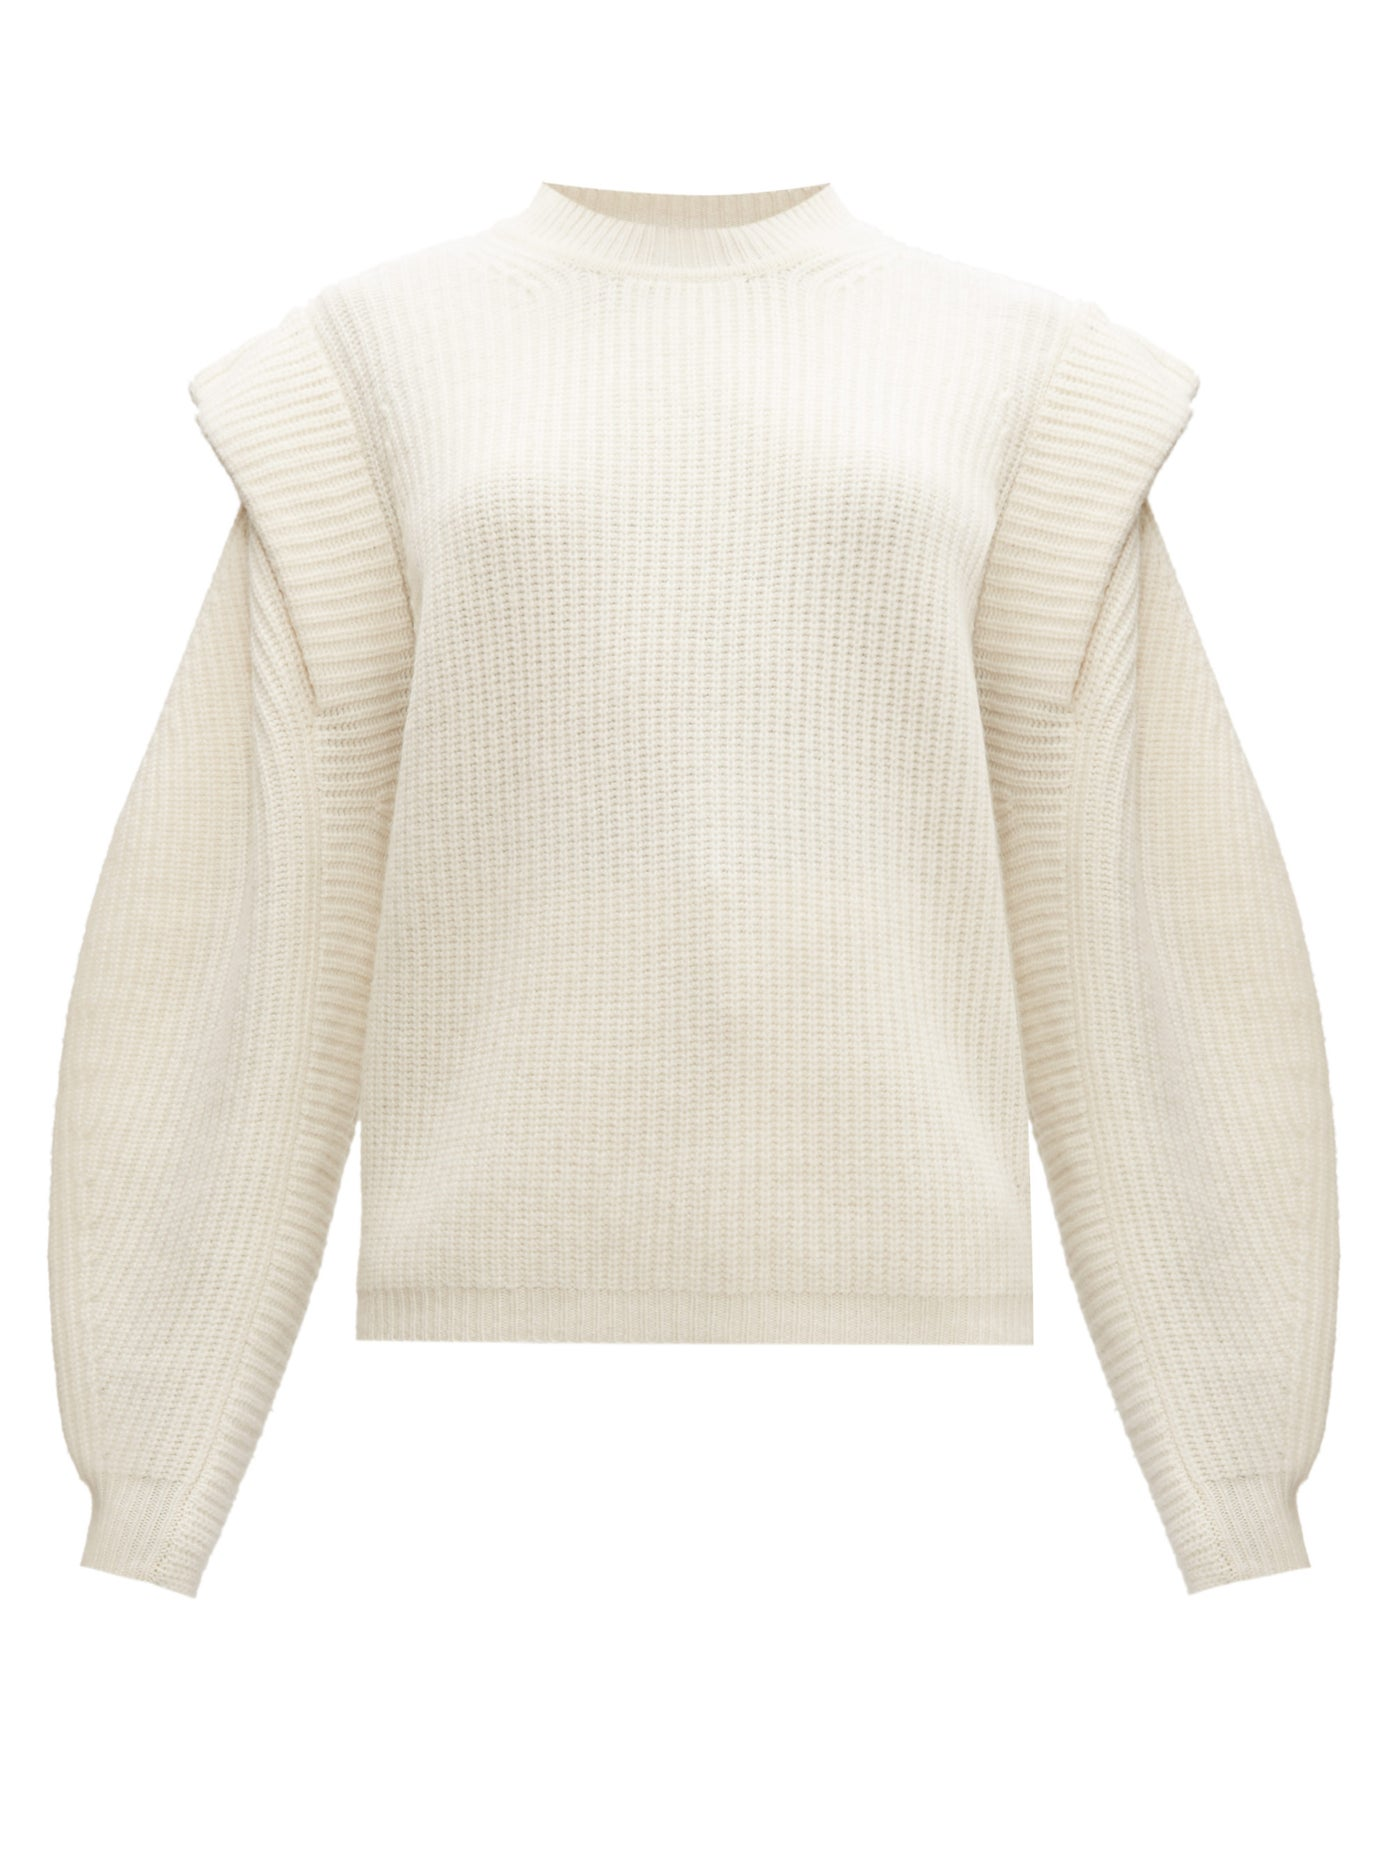 Bolton extended-shoulder wool-blend sweater by ISABEL MARANT, available on matchesfashion.com for $678 Olivia Culpo Top Exact Product